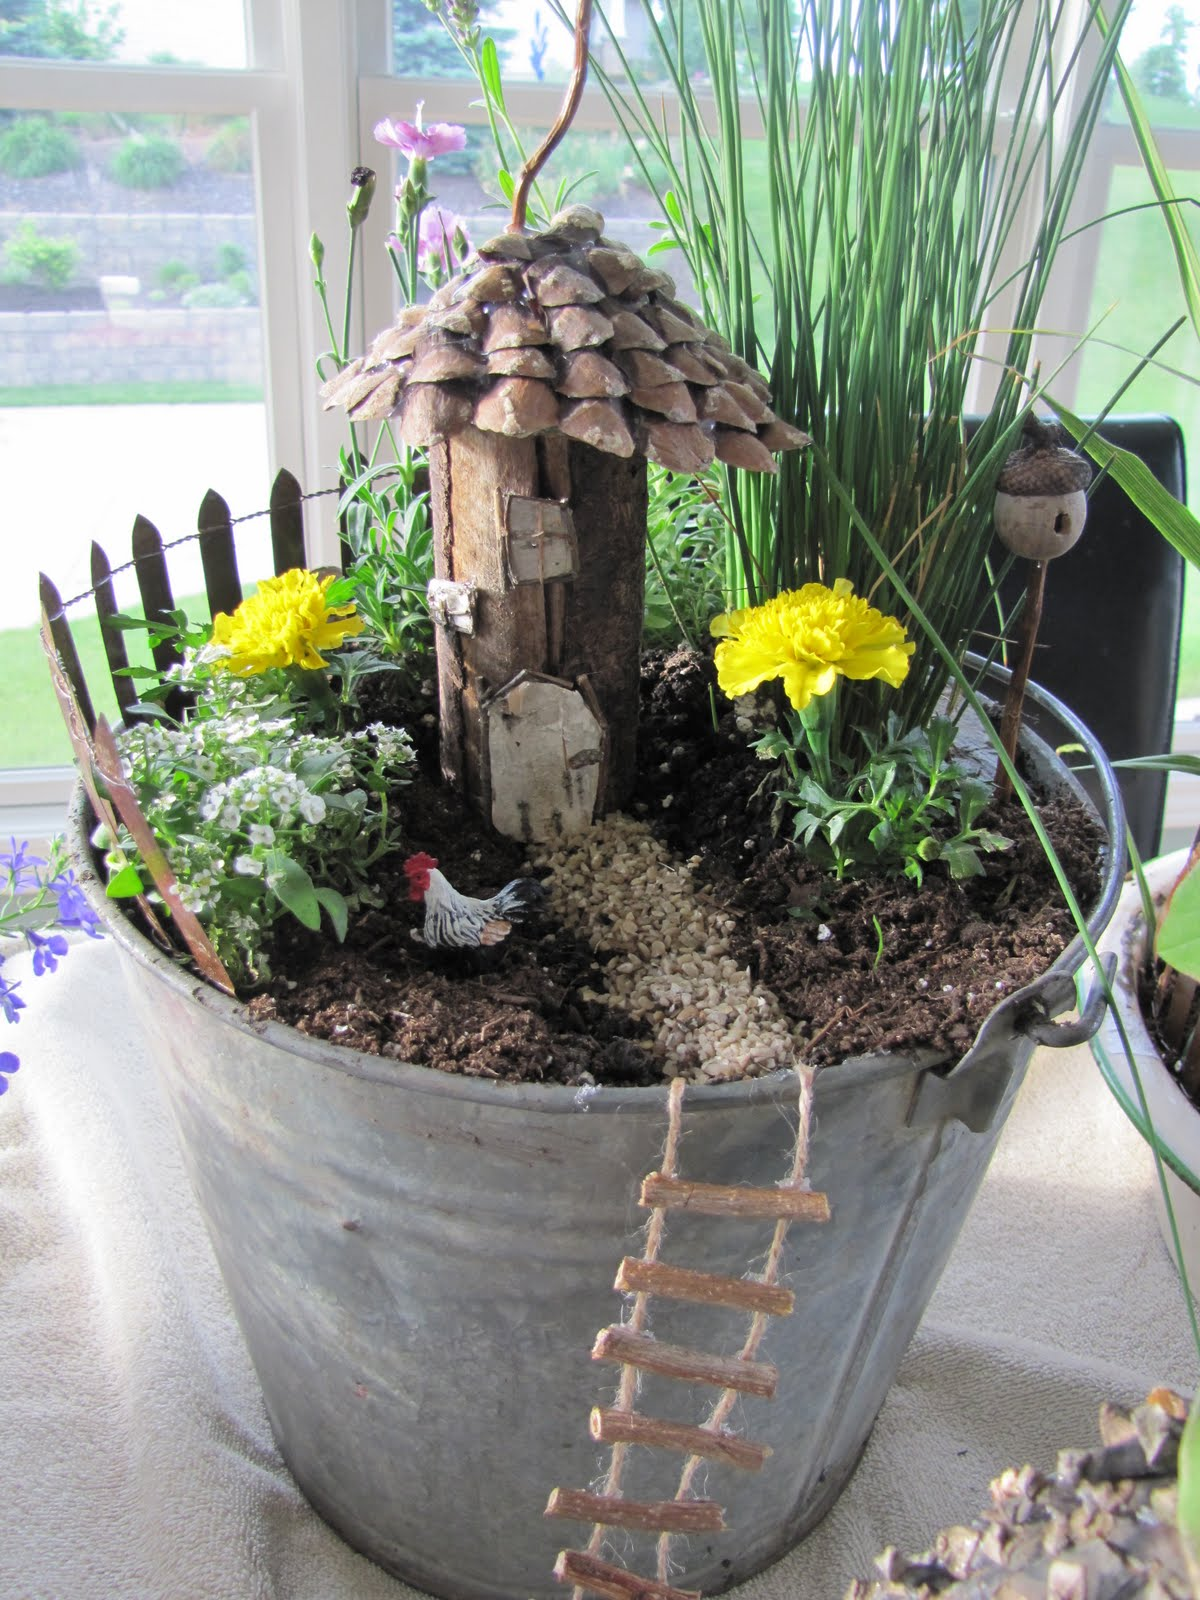 Fancilicious fairylands new fairy gardens for Olive garden cape girardeau missouri